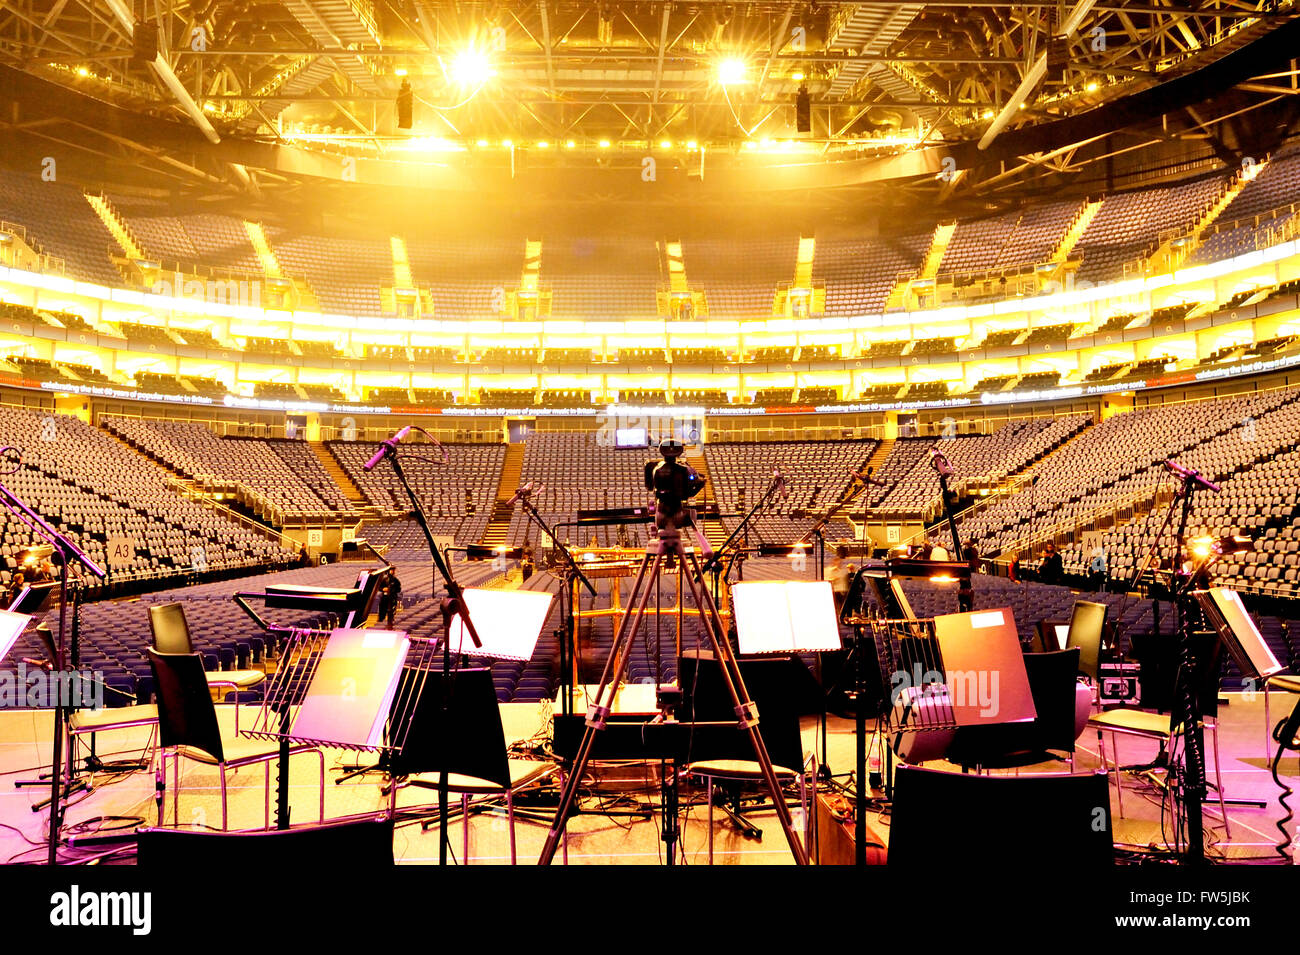 Concert auditorium, seen from the stage, of the O2 Arena, Millennium Dome (Millenium), North Greenwich, London, - Stock Image